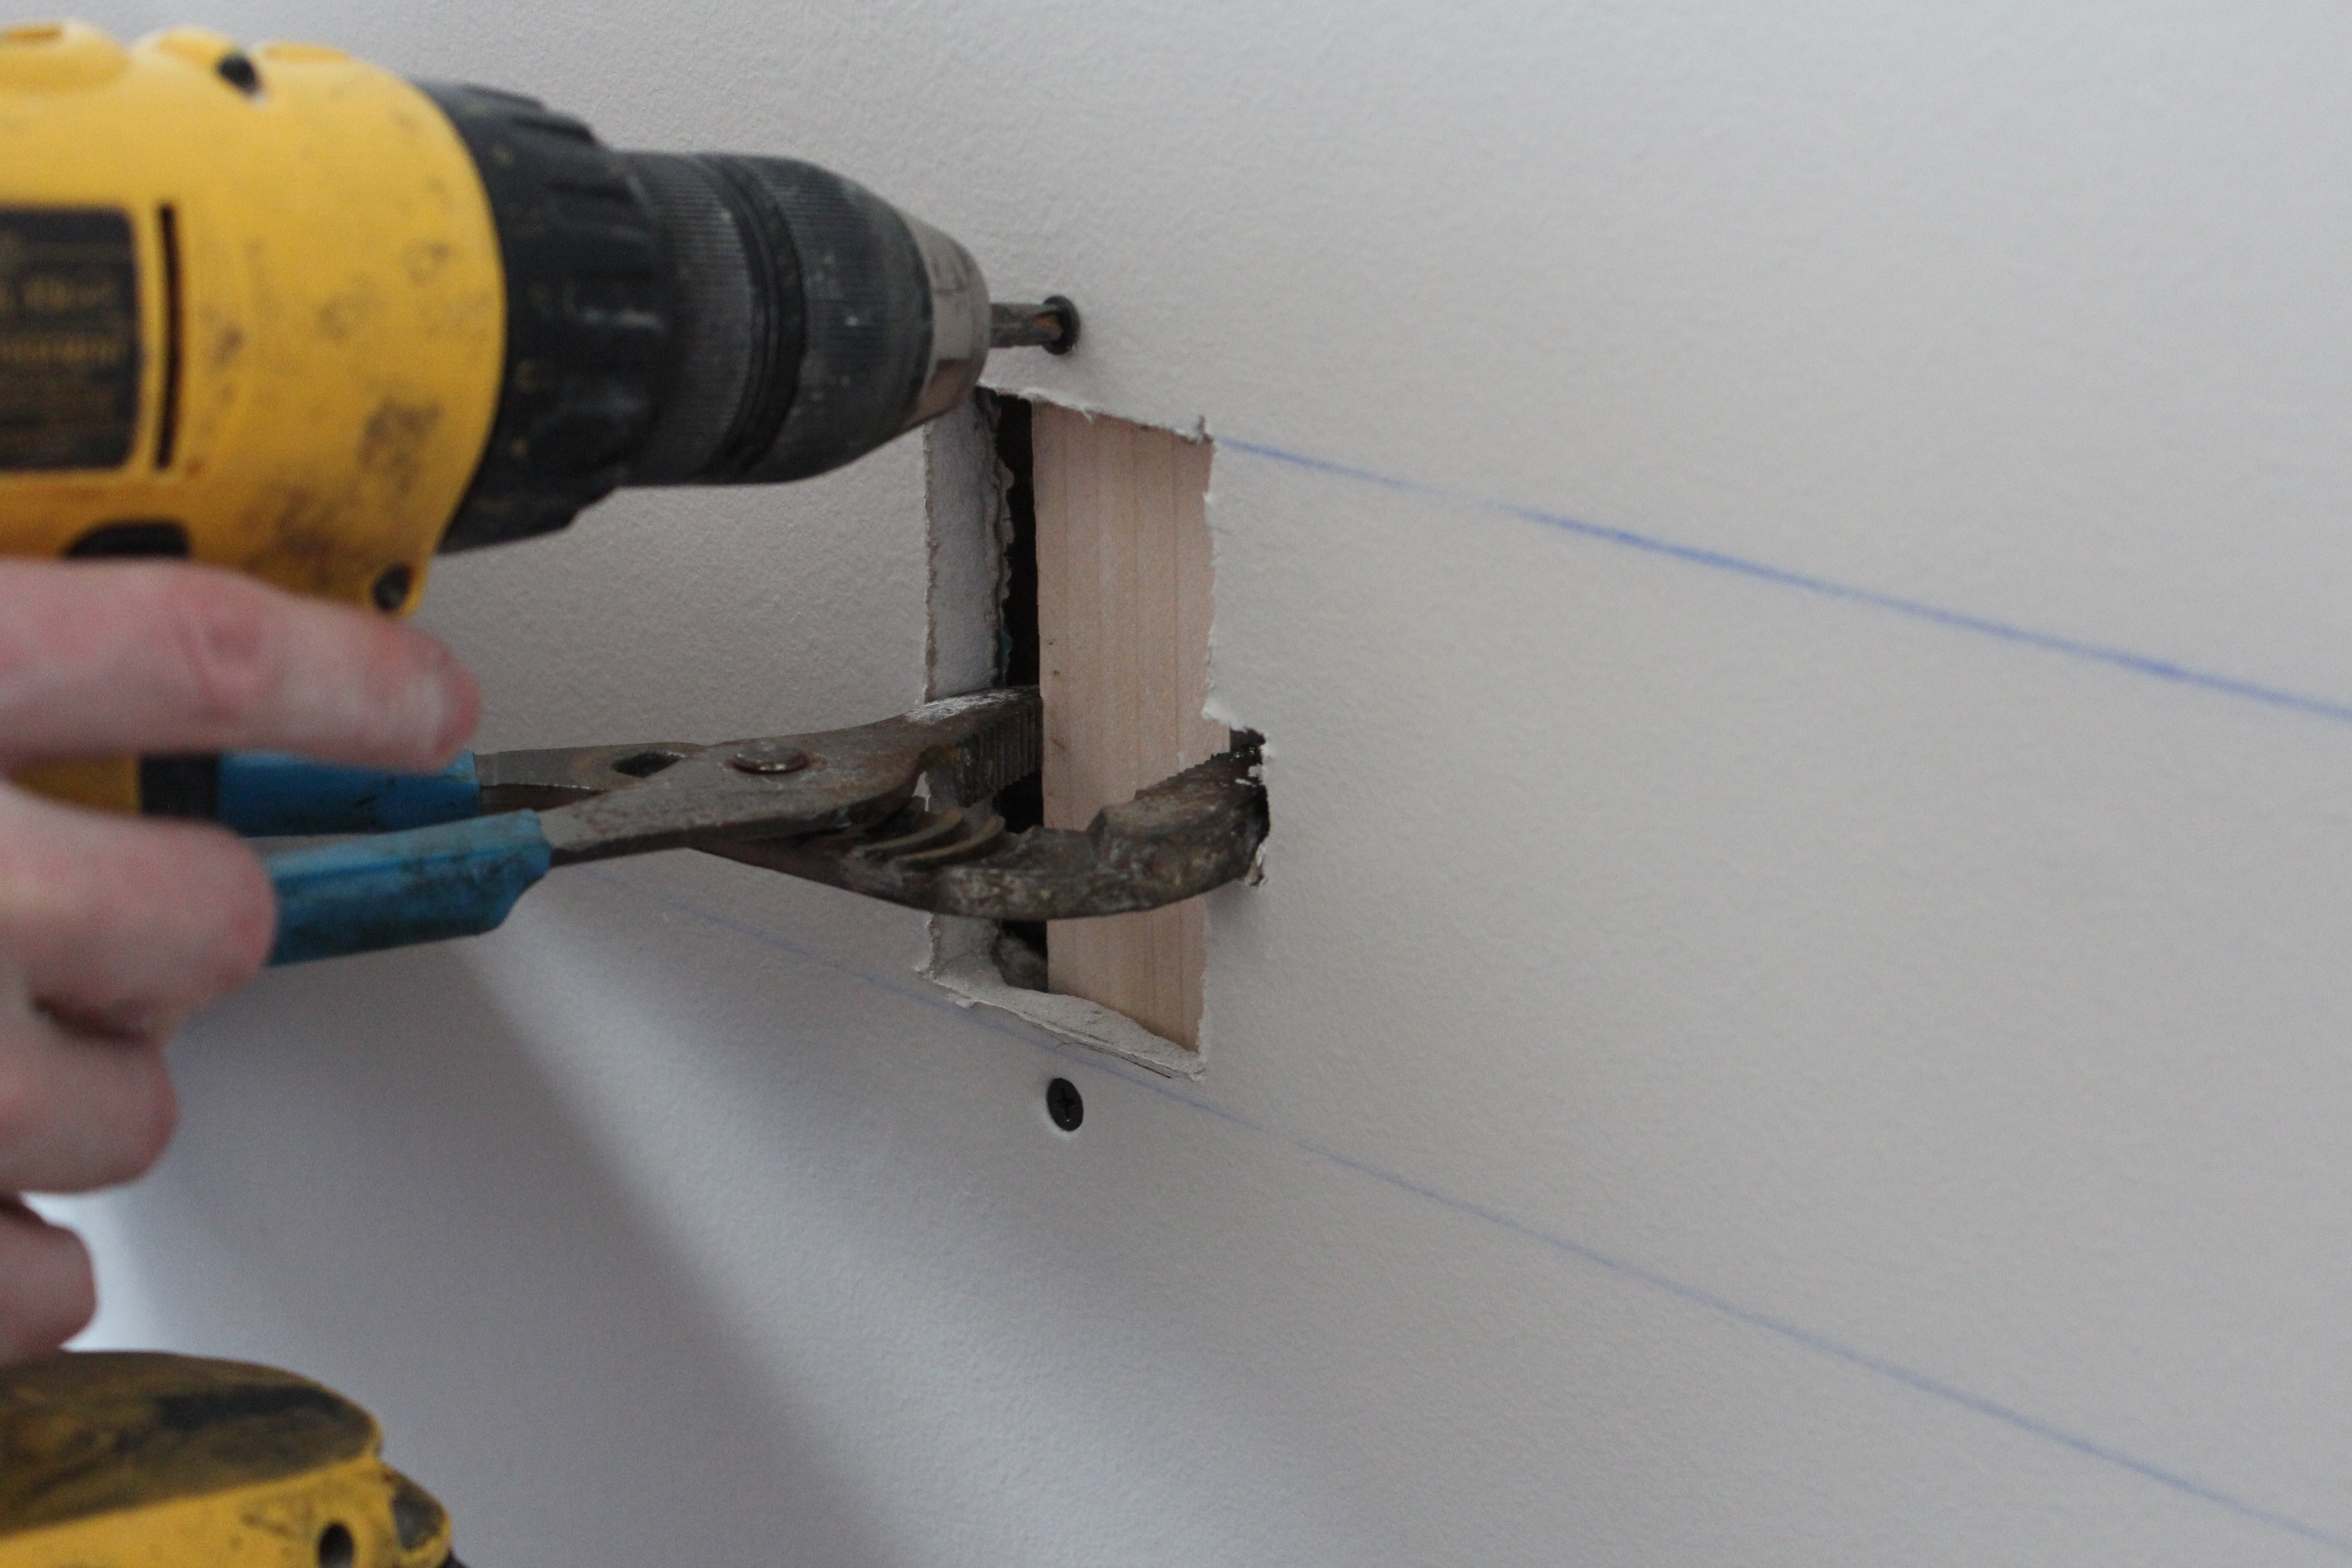 How to repair large hole in drywall - One The Drywall Plug Is In I Add The Mesh Tape You Could Also Use Paper But The Procedure Would Be Slightly Different Plus I Think The Mesh Works